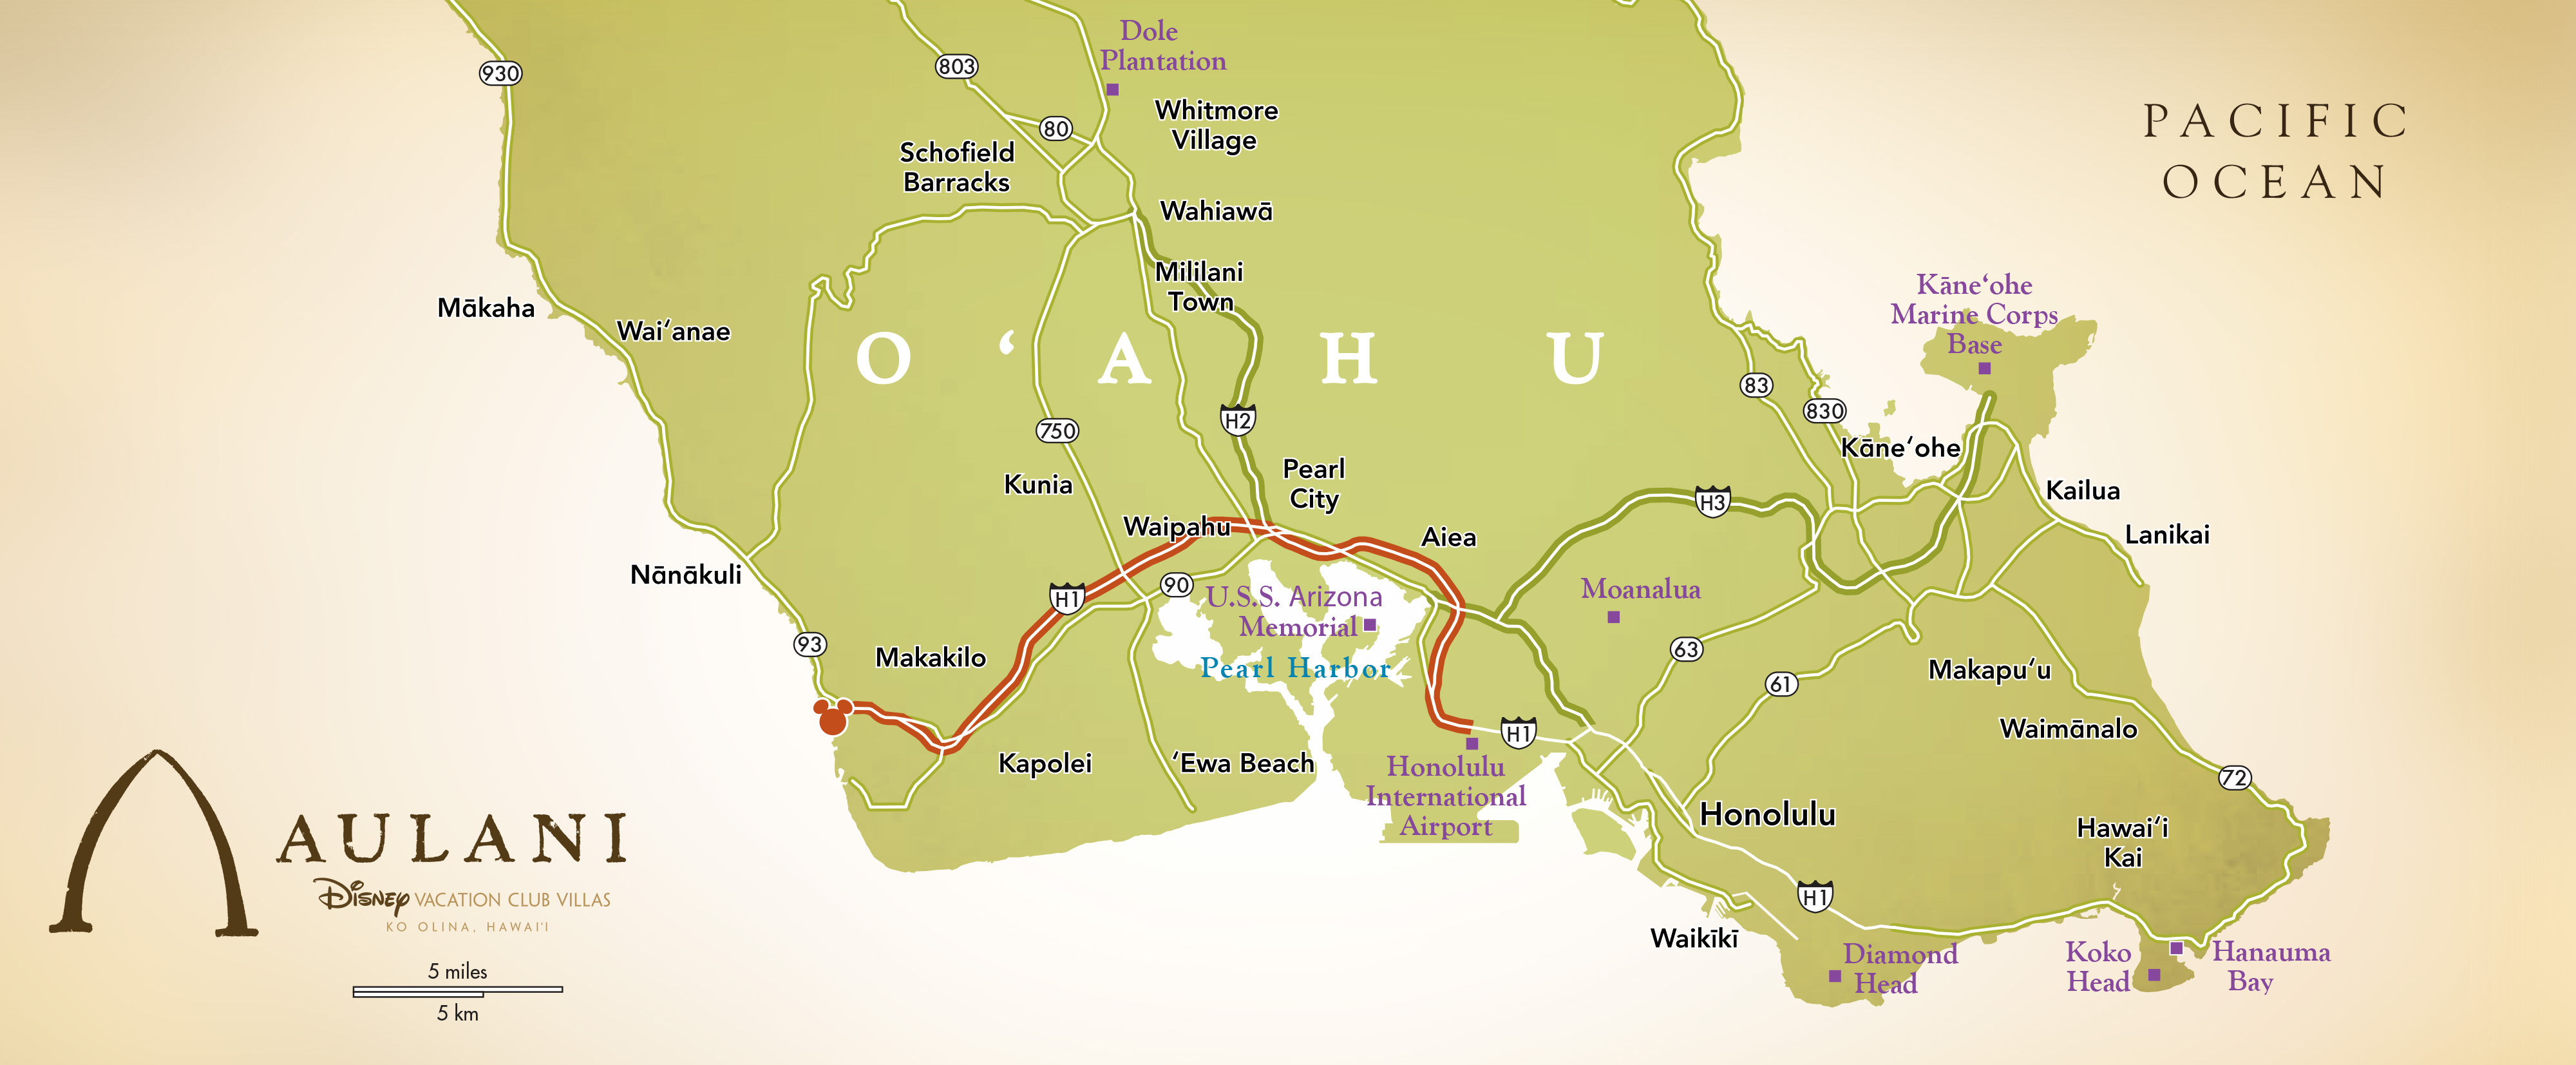 A map showing the route from Honolulu to Aulani Resort & Spa on the Southwestern shore of O'ahu